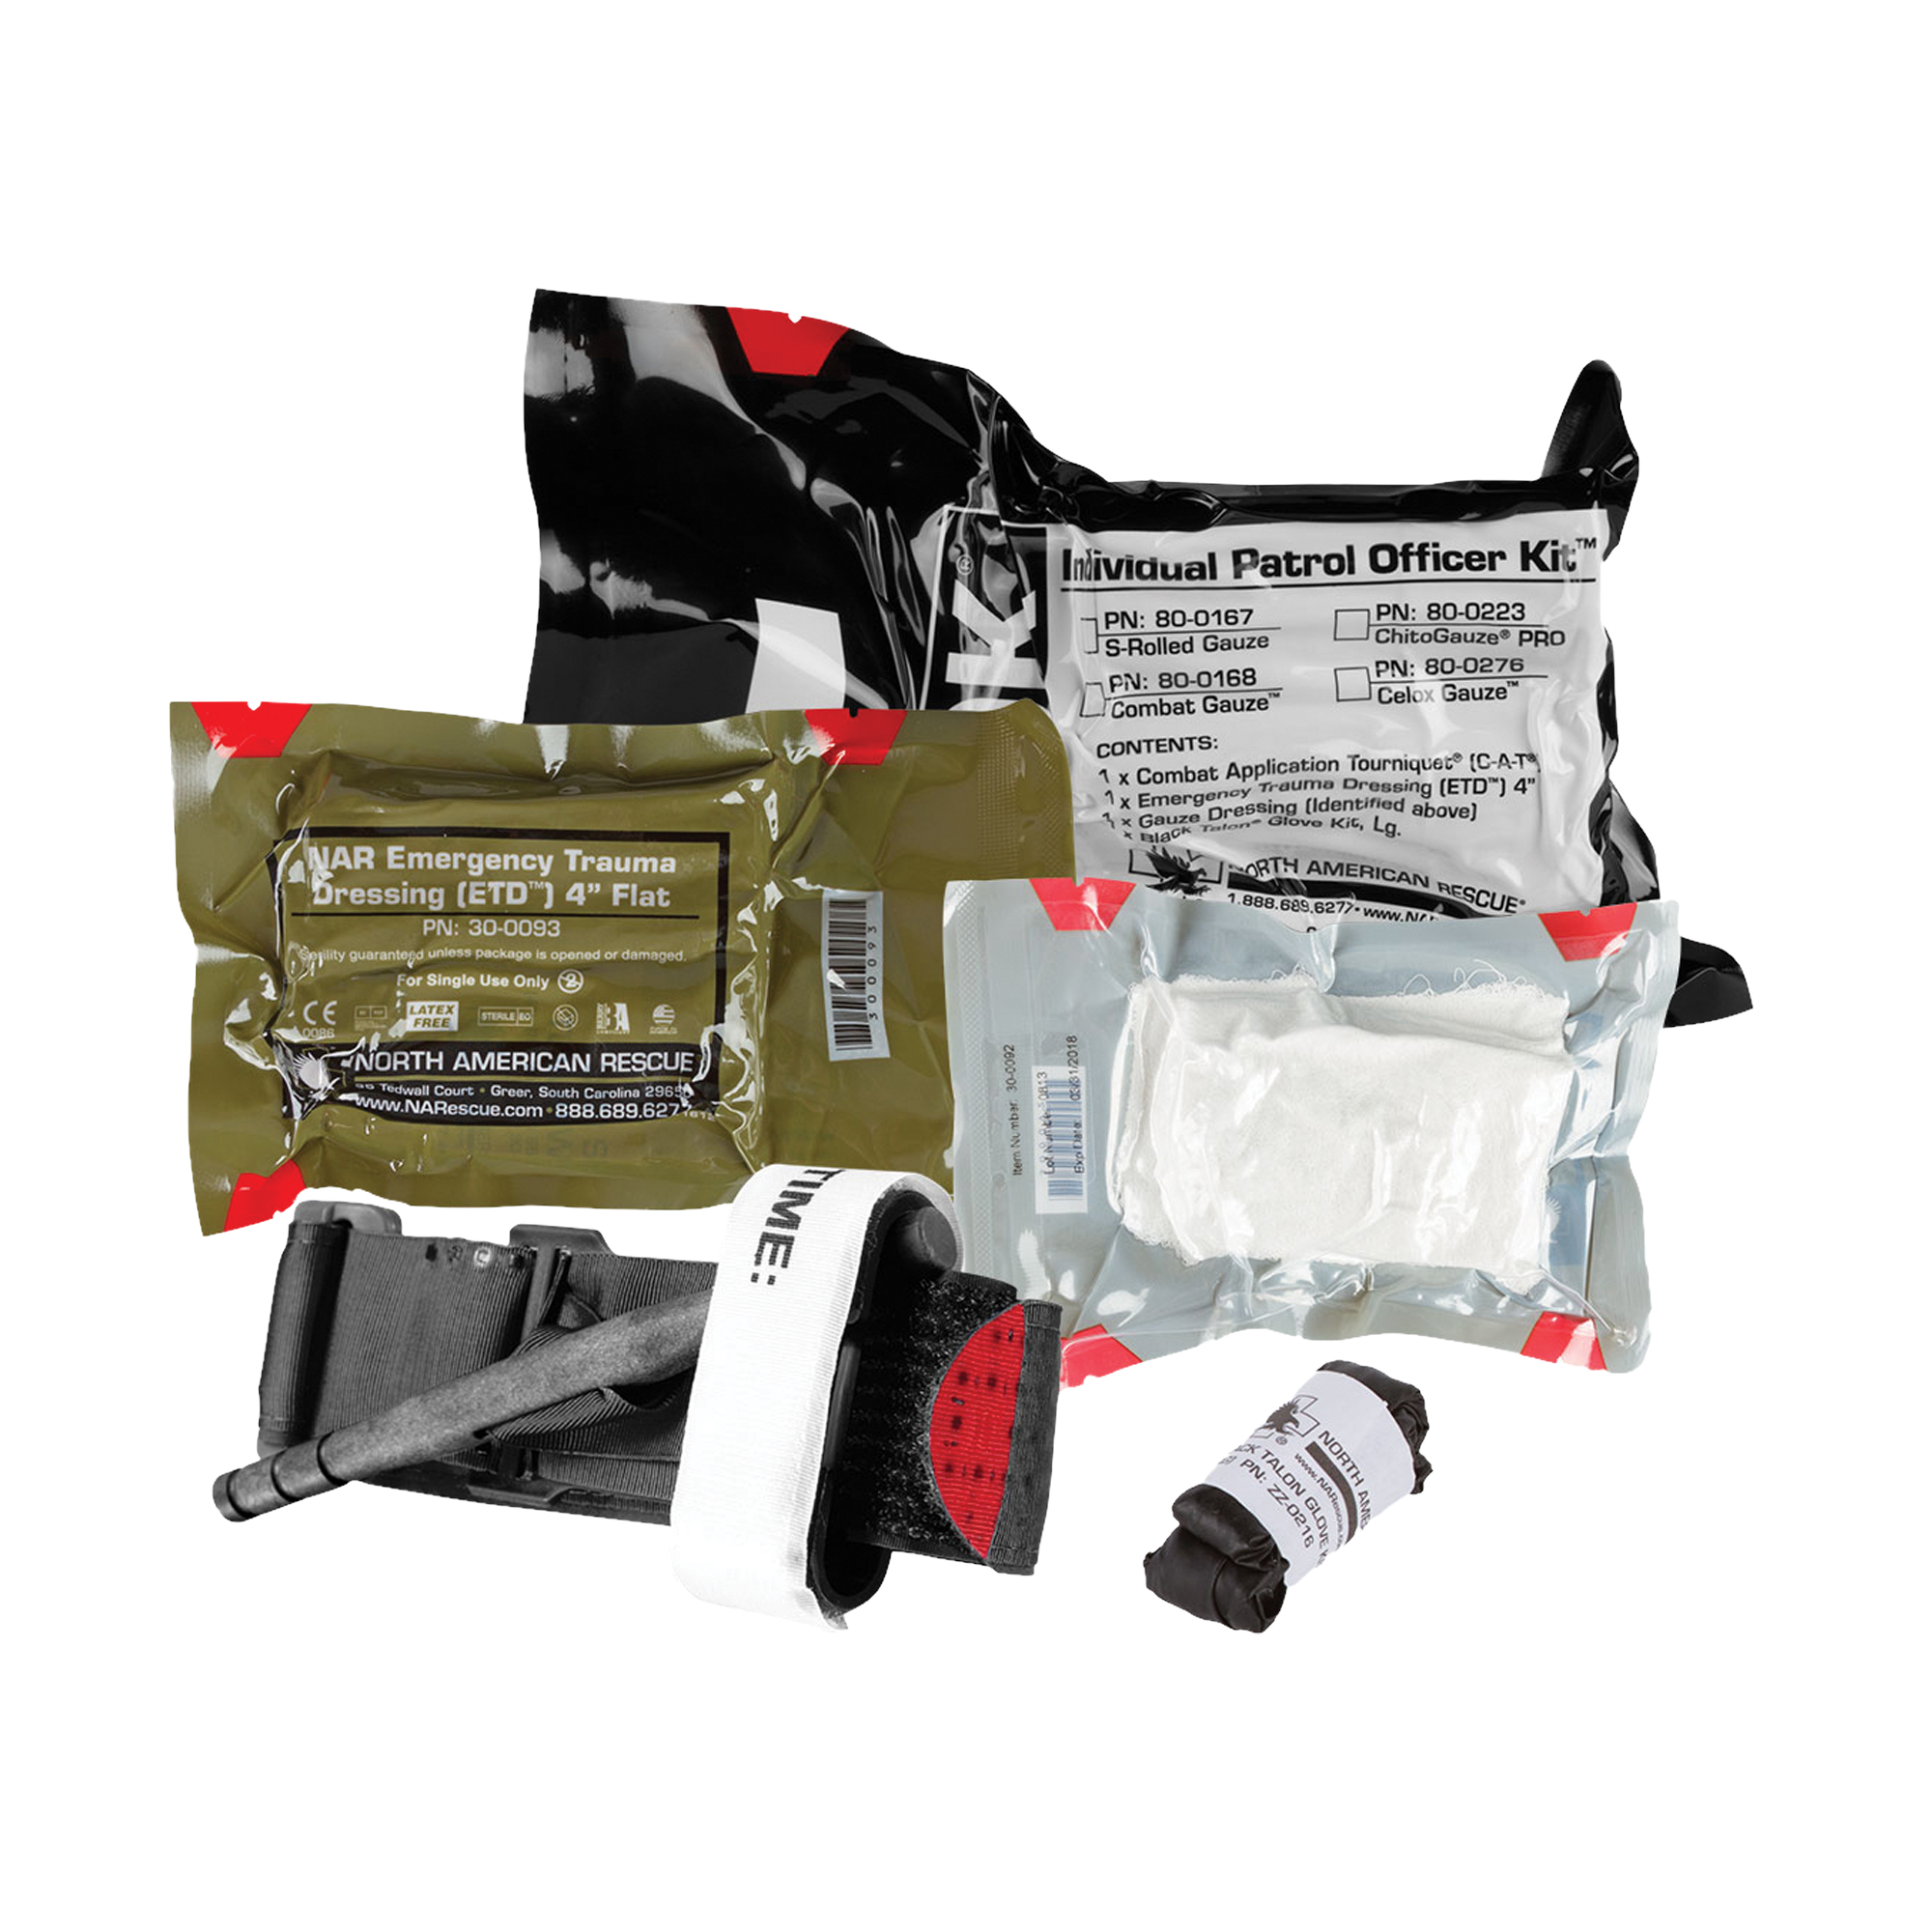 "The Individual Patrol Officer Kit (IPOK) from North American Rescue is designed to provide personnel with a cost effective"" compact and durable individual hemorrhage control kit to treat bleeding from penetrating and other traumatic injuries. These kits are packaged for small cube space and designed to fit into a BDU pocket"" vest pouch"" or individual bag"" which allows personnel to keep a compact bleeding control kit on their person"" where it is needed most. The contents are vacuum sealed in an easy-to-open"" rugged"" durable package featuring NAR's Red Tip Technology(R) signature red tear notches."